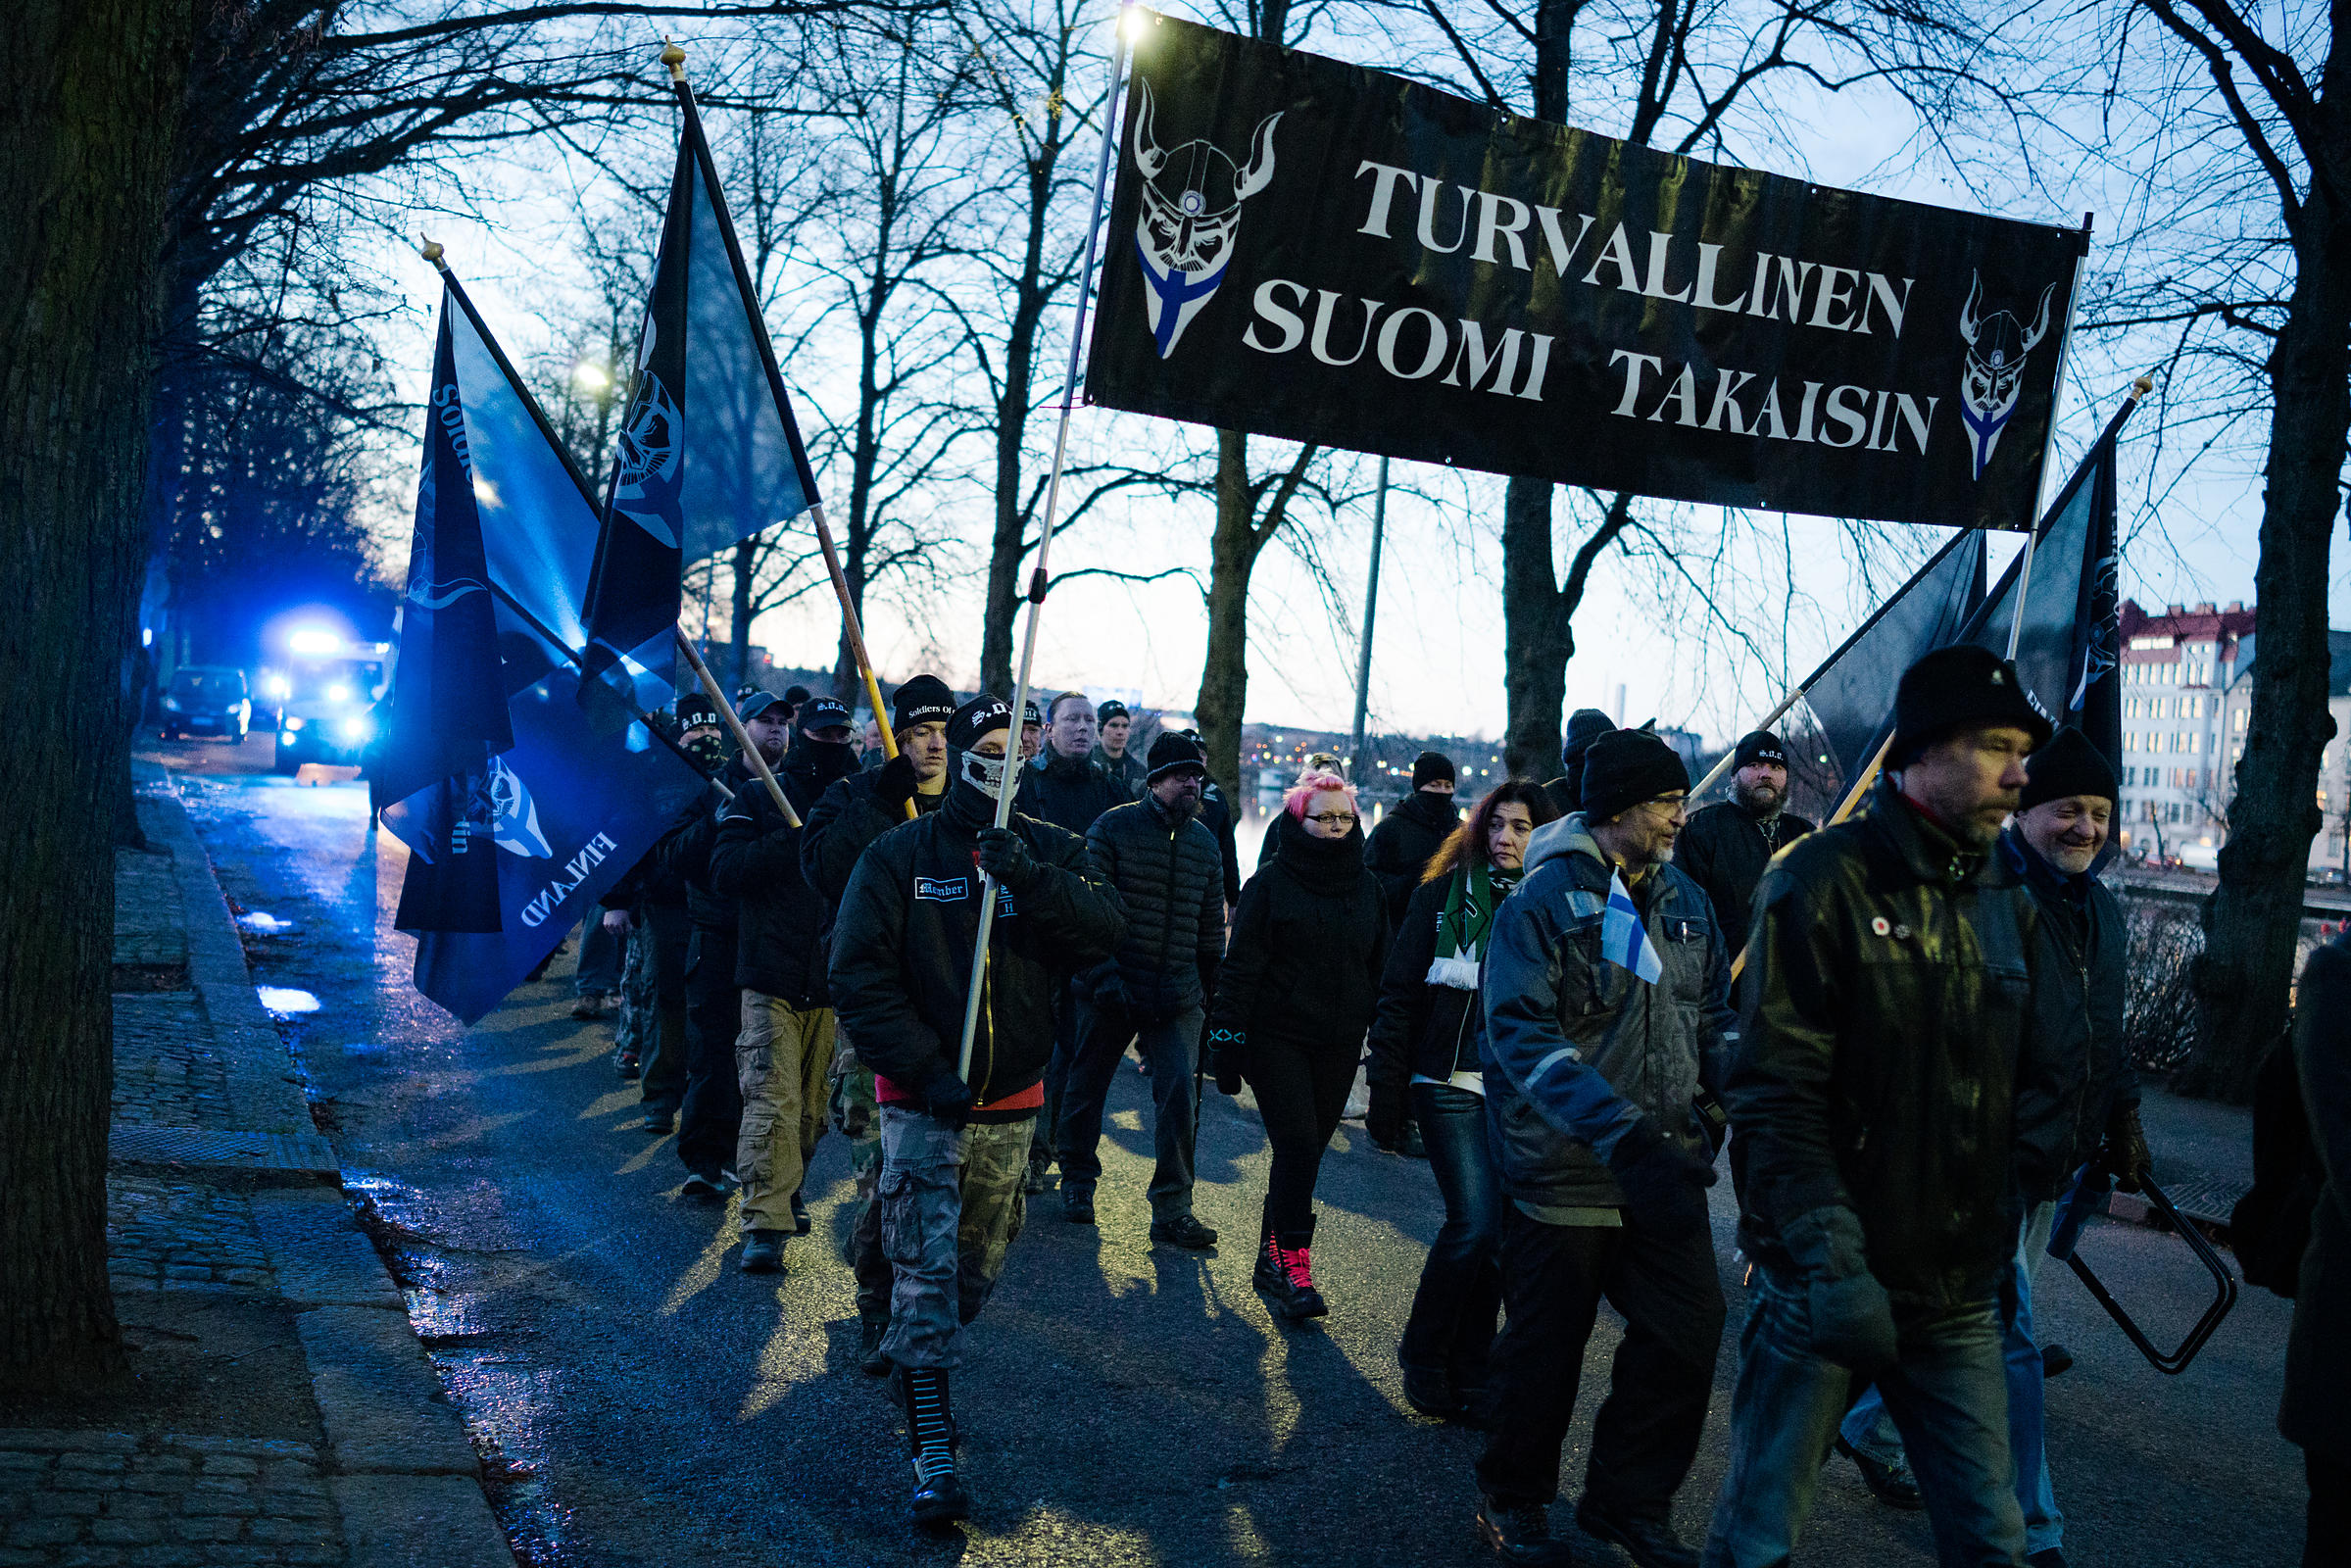 In addition to the Nordic Resistance Movement, 'Soldiers of Odin', an anti-immigrant neighborhood watch group was prominently...